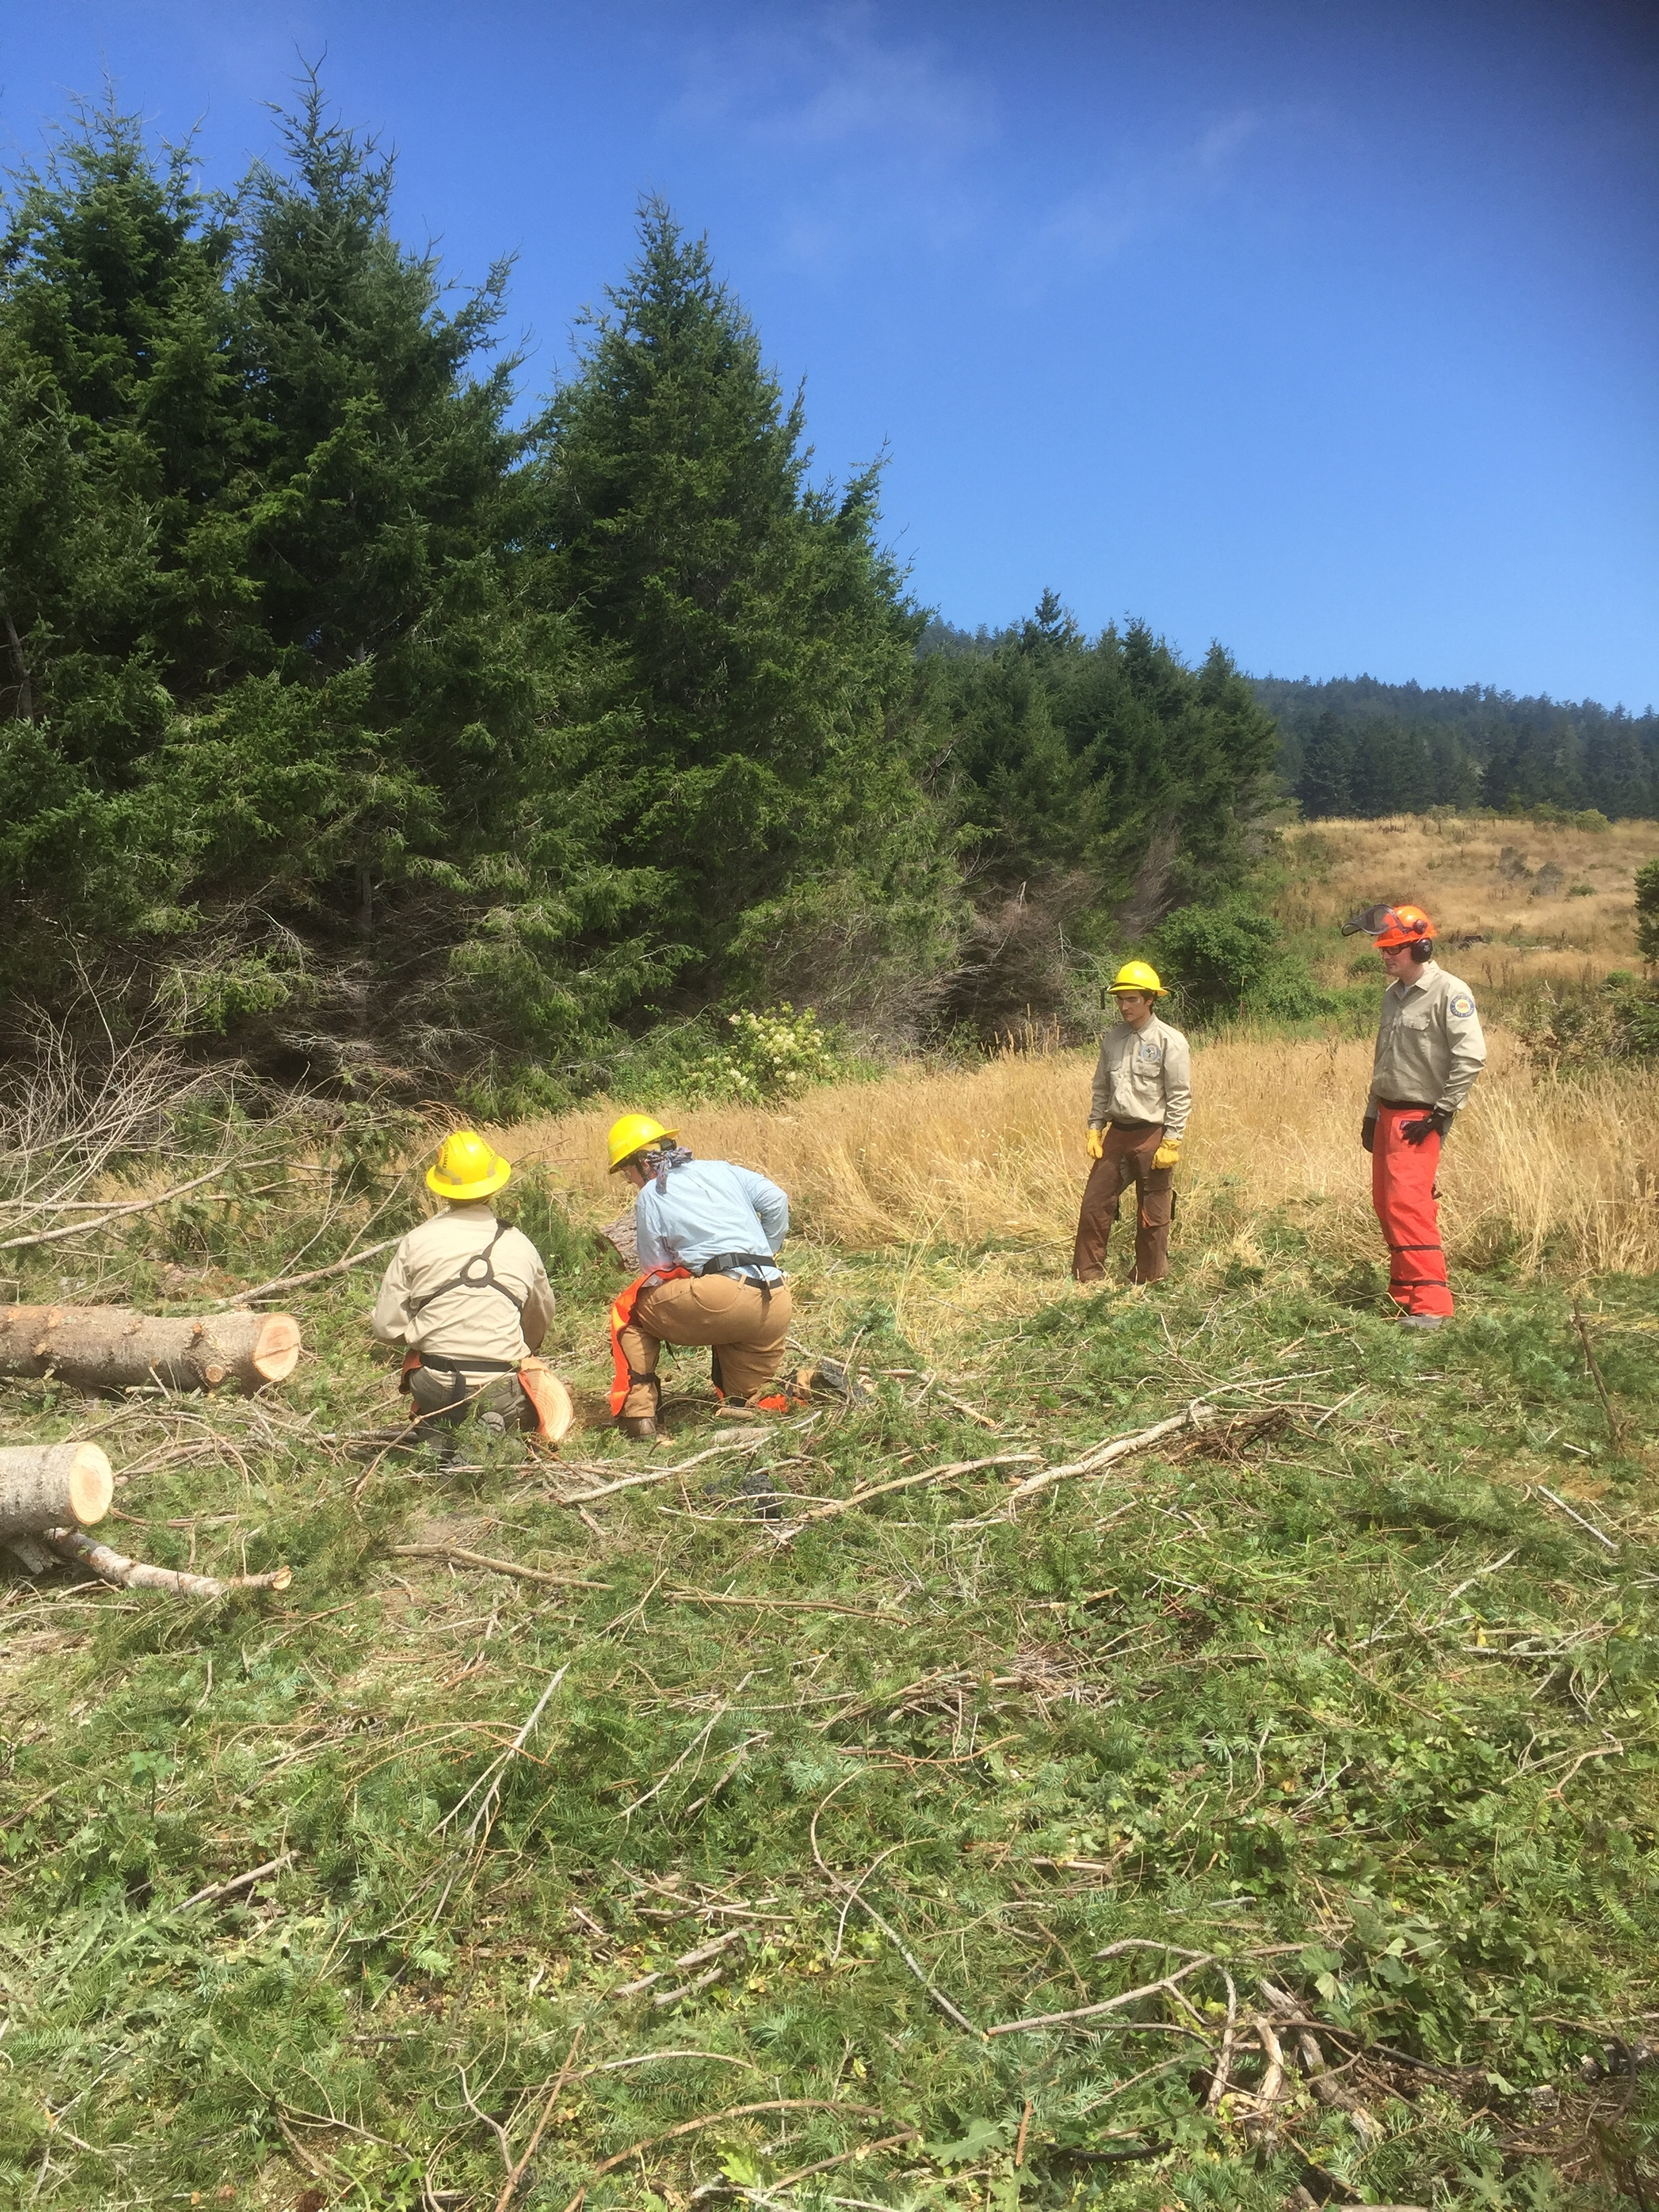 Esak Ordonez, second from right, observes safe chainsaw use during a training offered by State Parks staff.